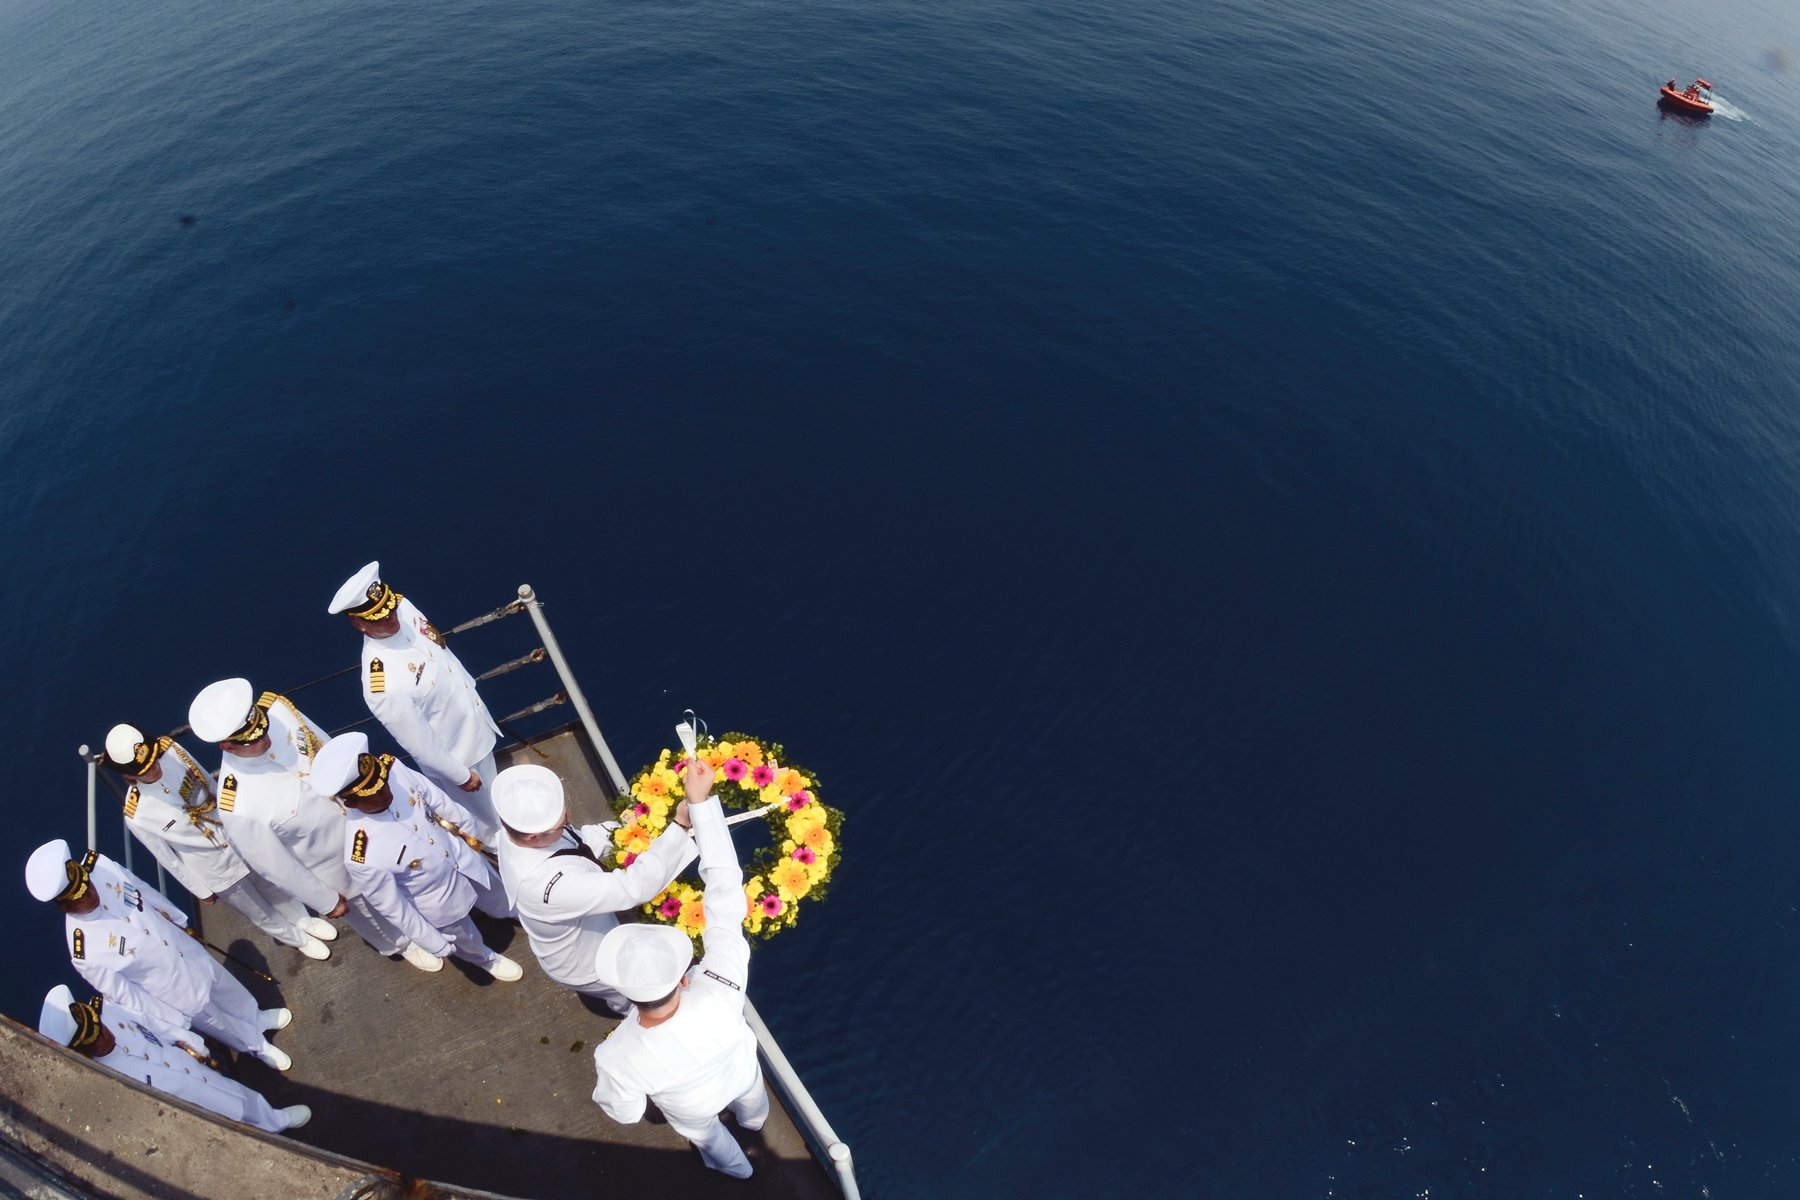 Sailors assigned to the submarine tender USS Frank Cable (AS 40) lower a wreath into the water as naval officers from Australia, Indonesia and the United States observe during a ceremony in honor of the crews of the U.S. Navy heavy cruiser USS Houston (CA 30) and the Royal Australian Navy light cruiser HMAS Perth (D29) on Oct. 14, 2014. US Navy Photo